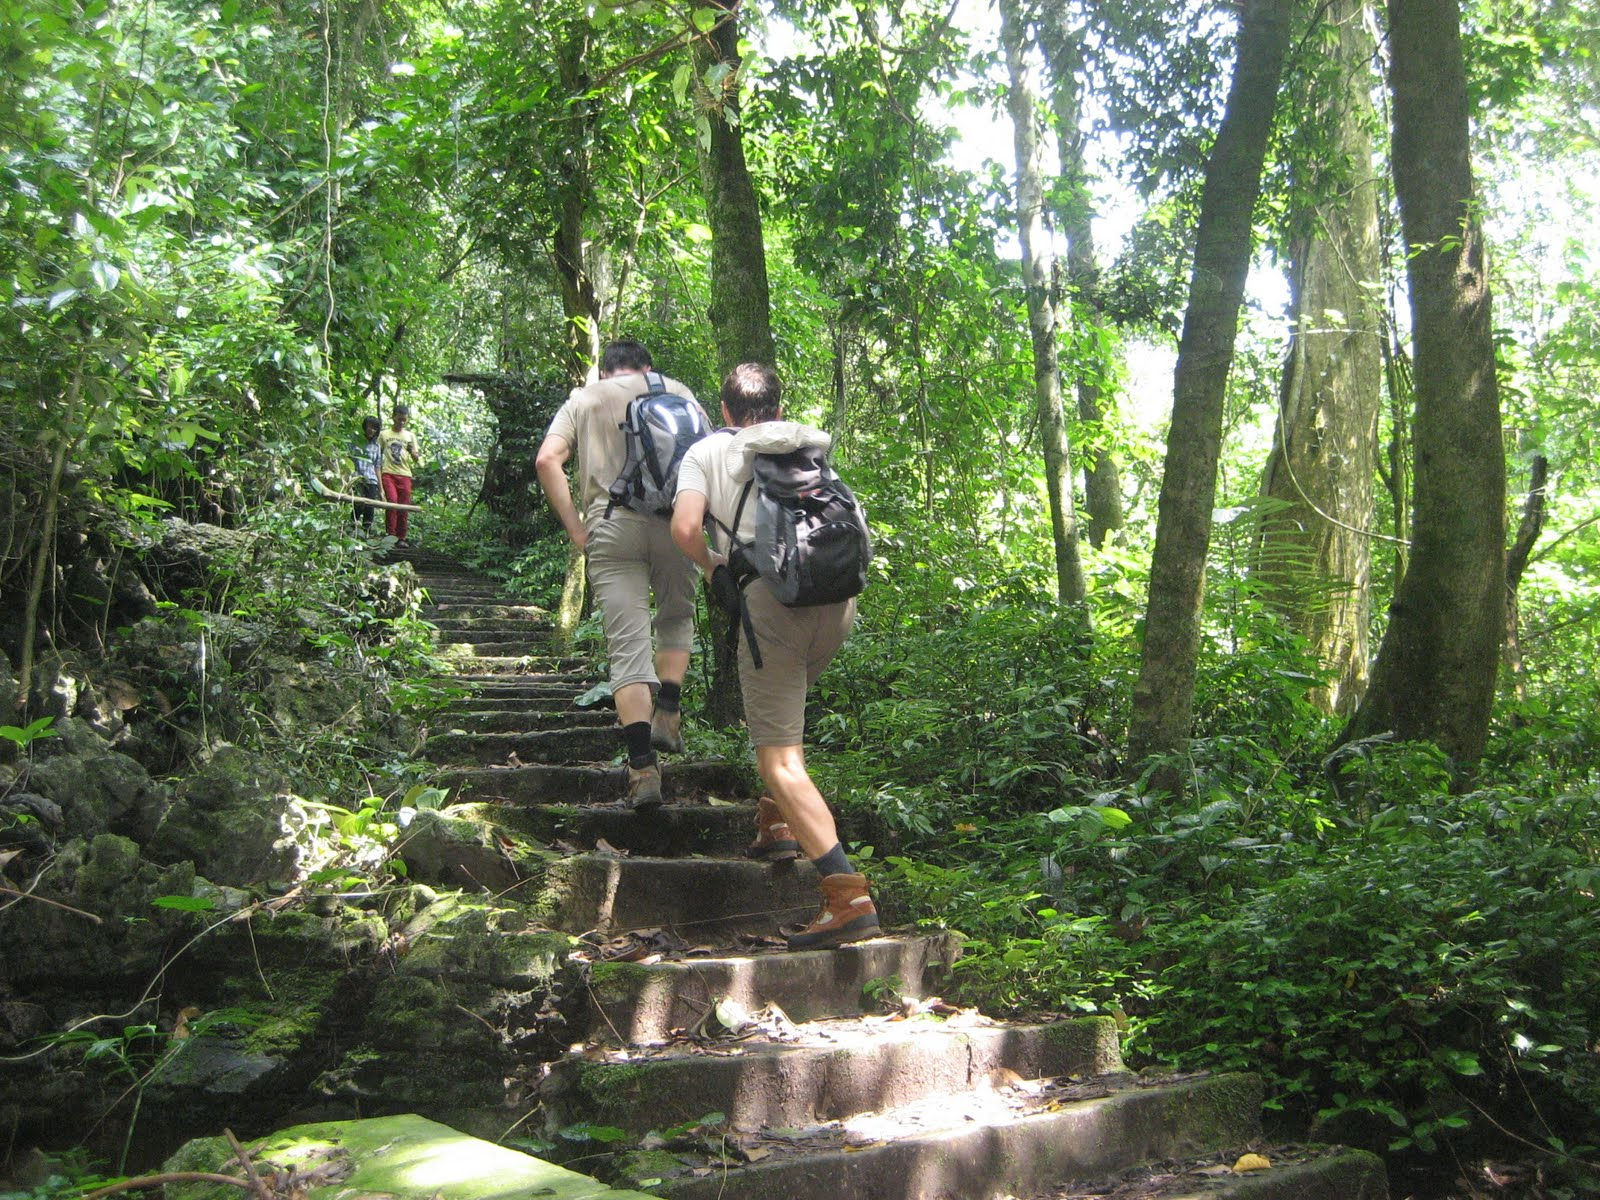 Trekking in Cuc Phuong National Park